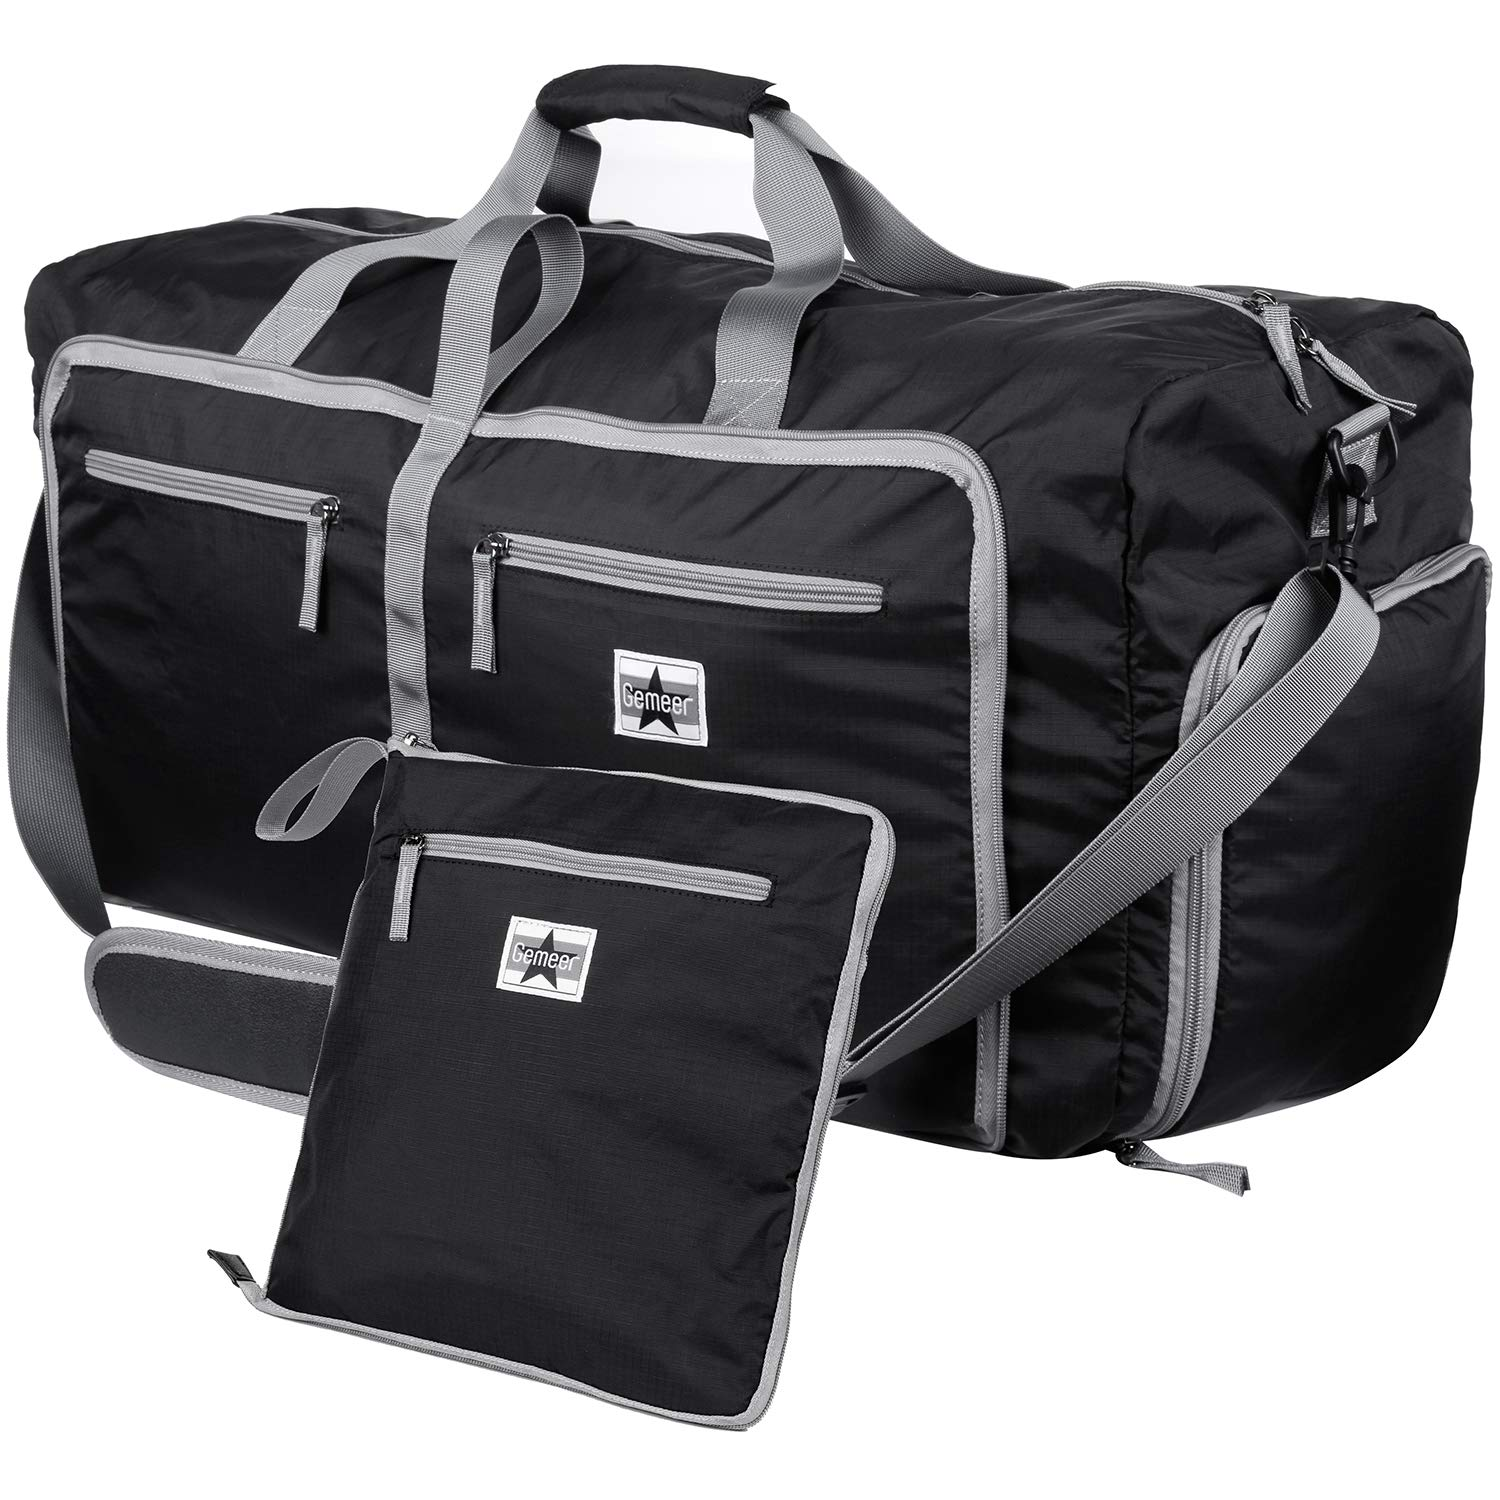 24ec4d9f4be1 Suitcases & Travel Bags